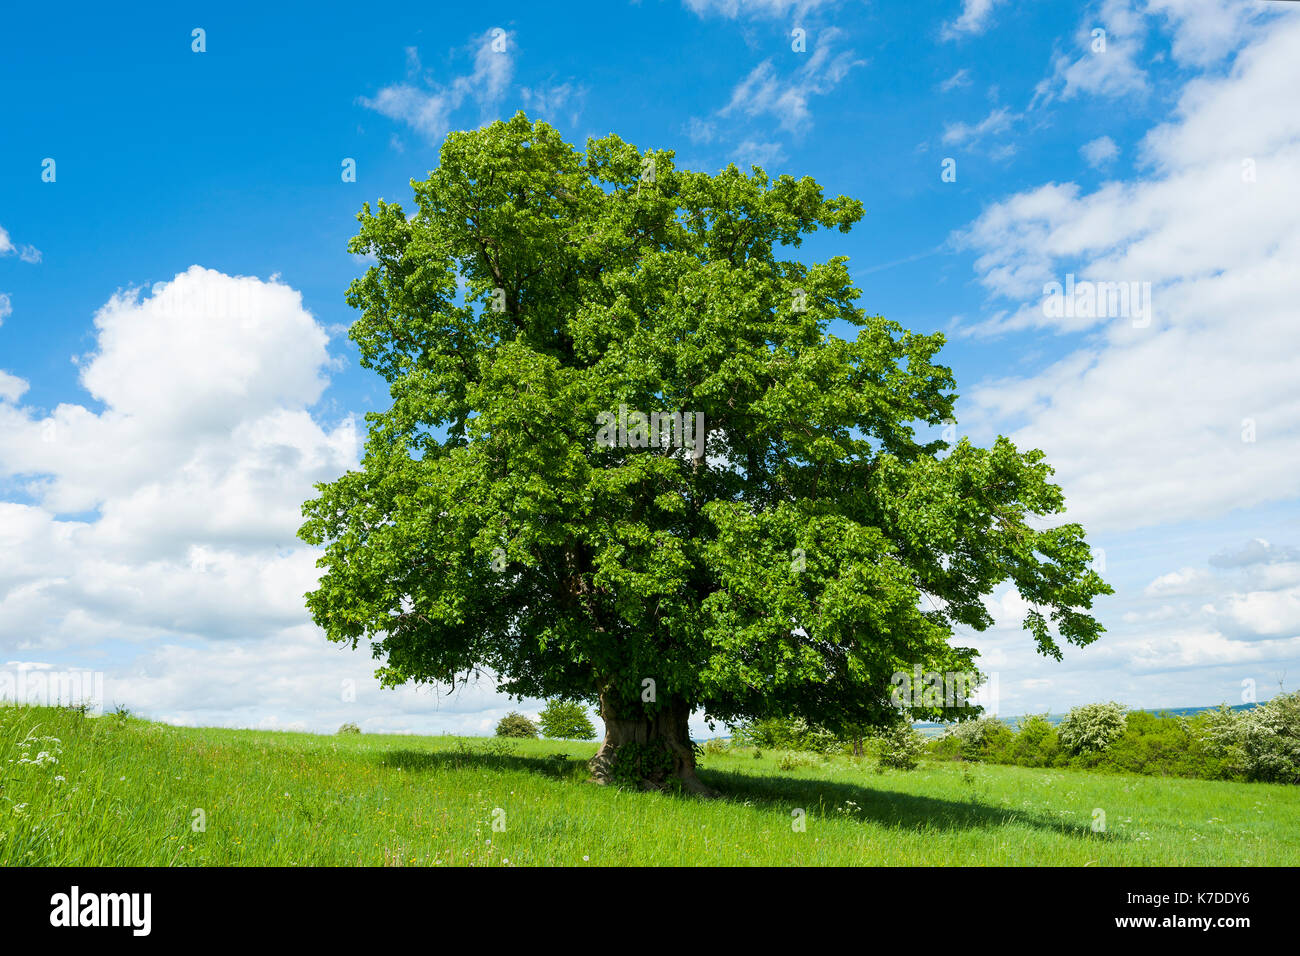 Old Large-leaved Linden (Tilia platyphyllos), solitary tree, 400 years old, Thuringia, Germany Stock Photo